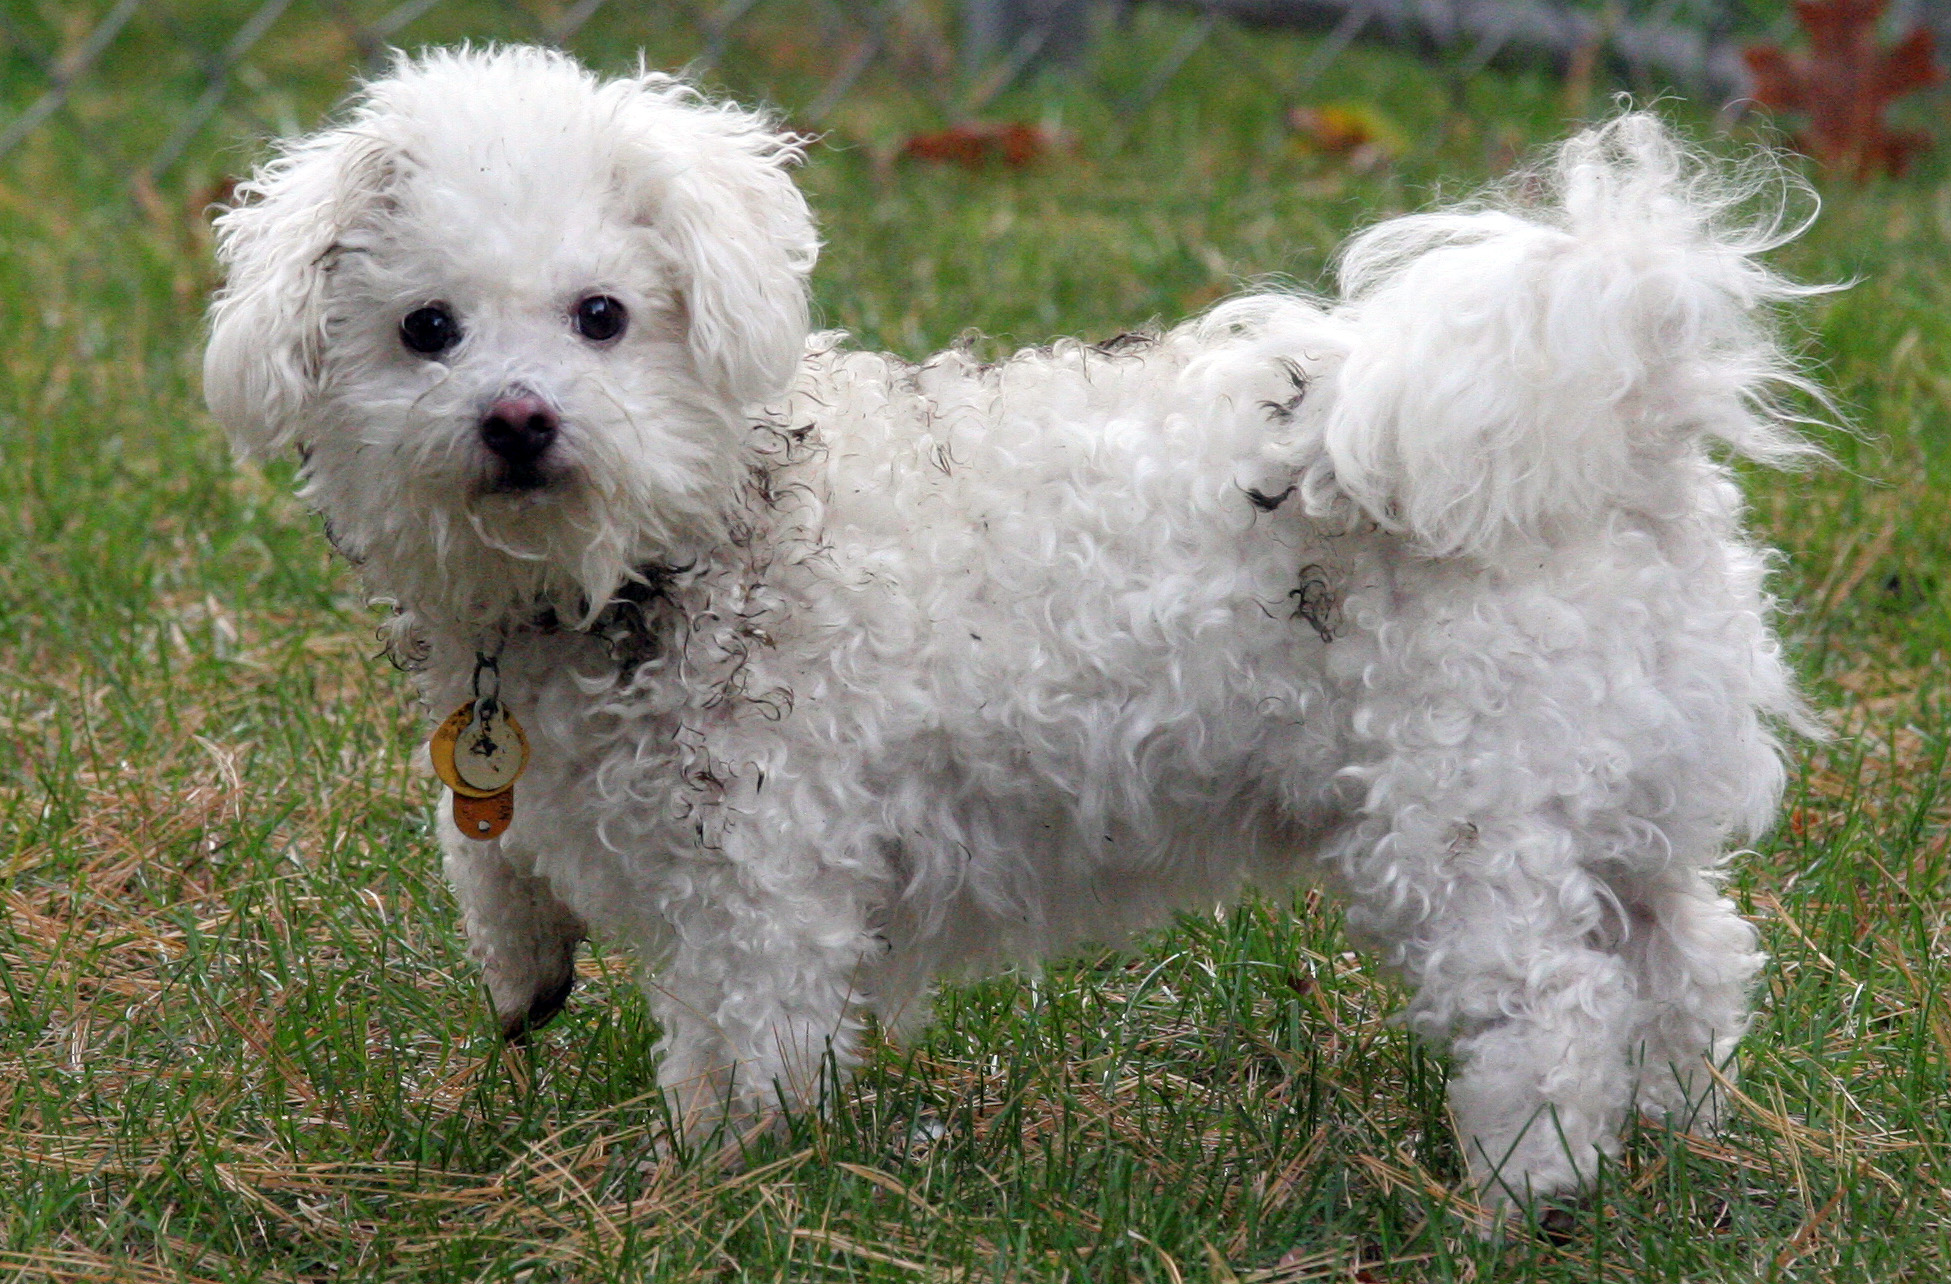 ... -legged, very curly –haired dogs (like the one below) are uncommon